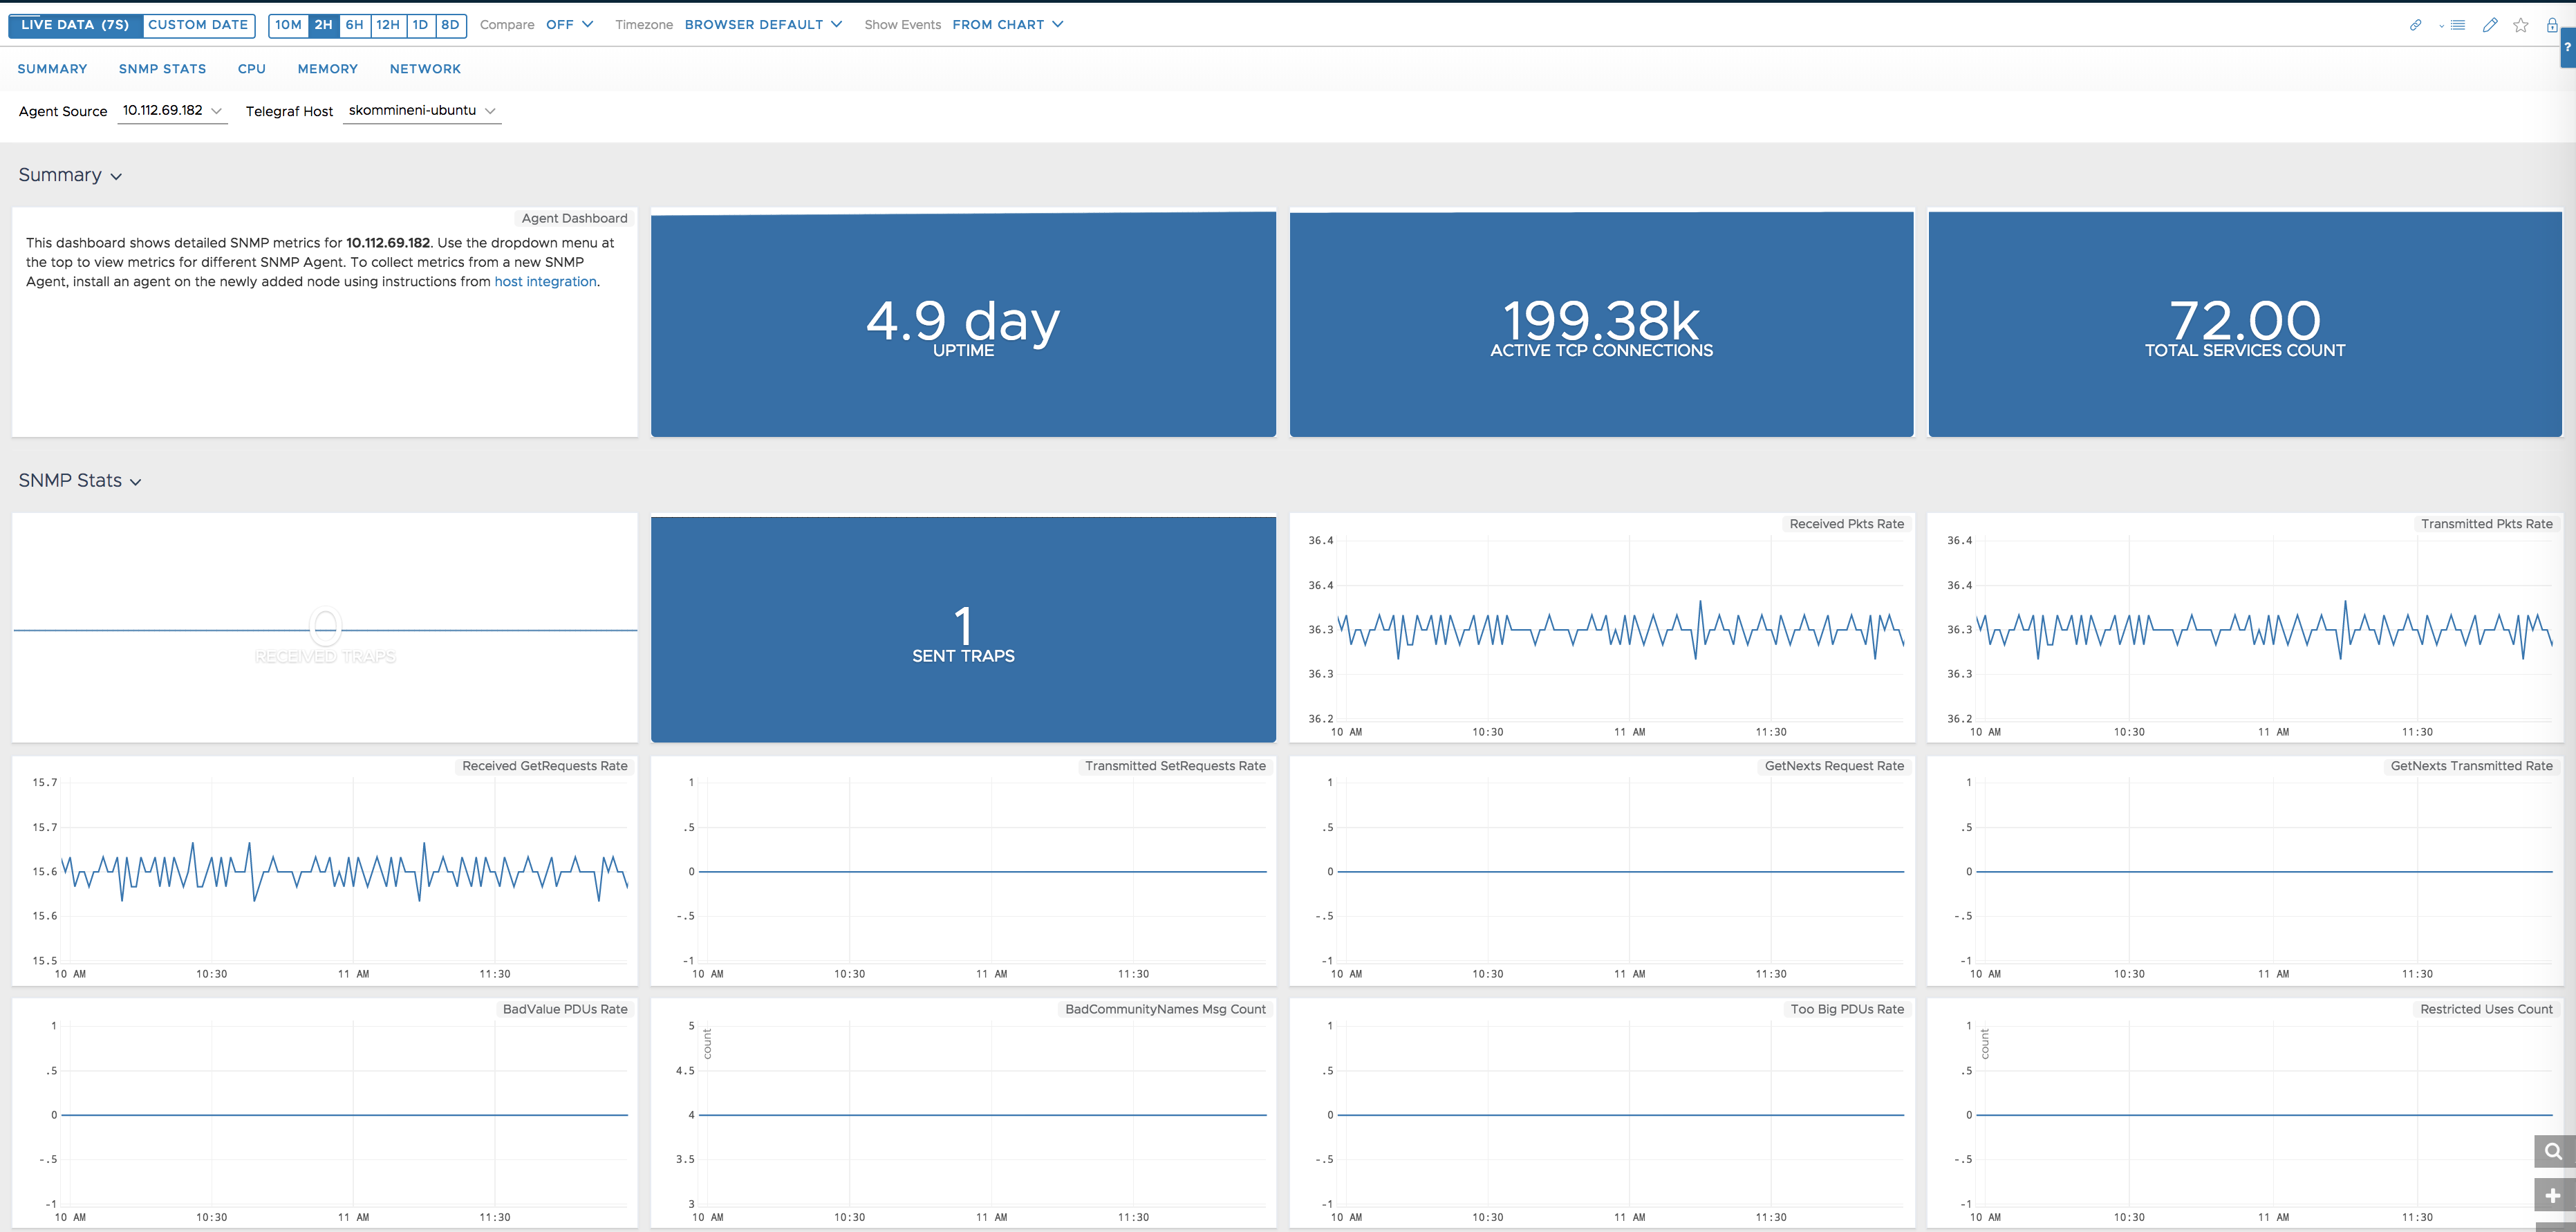 images/SNMP_Dashboard.png